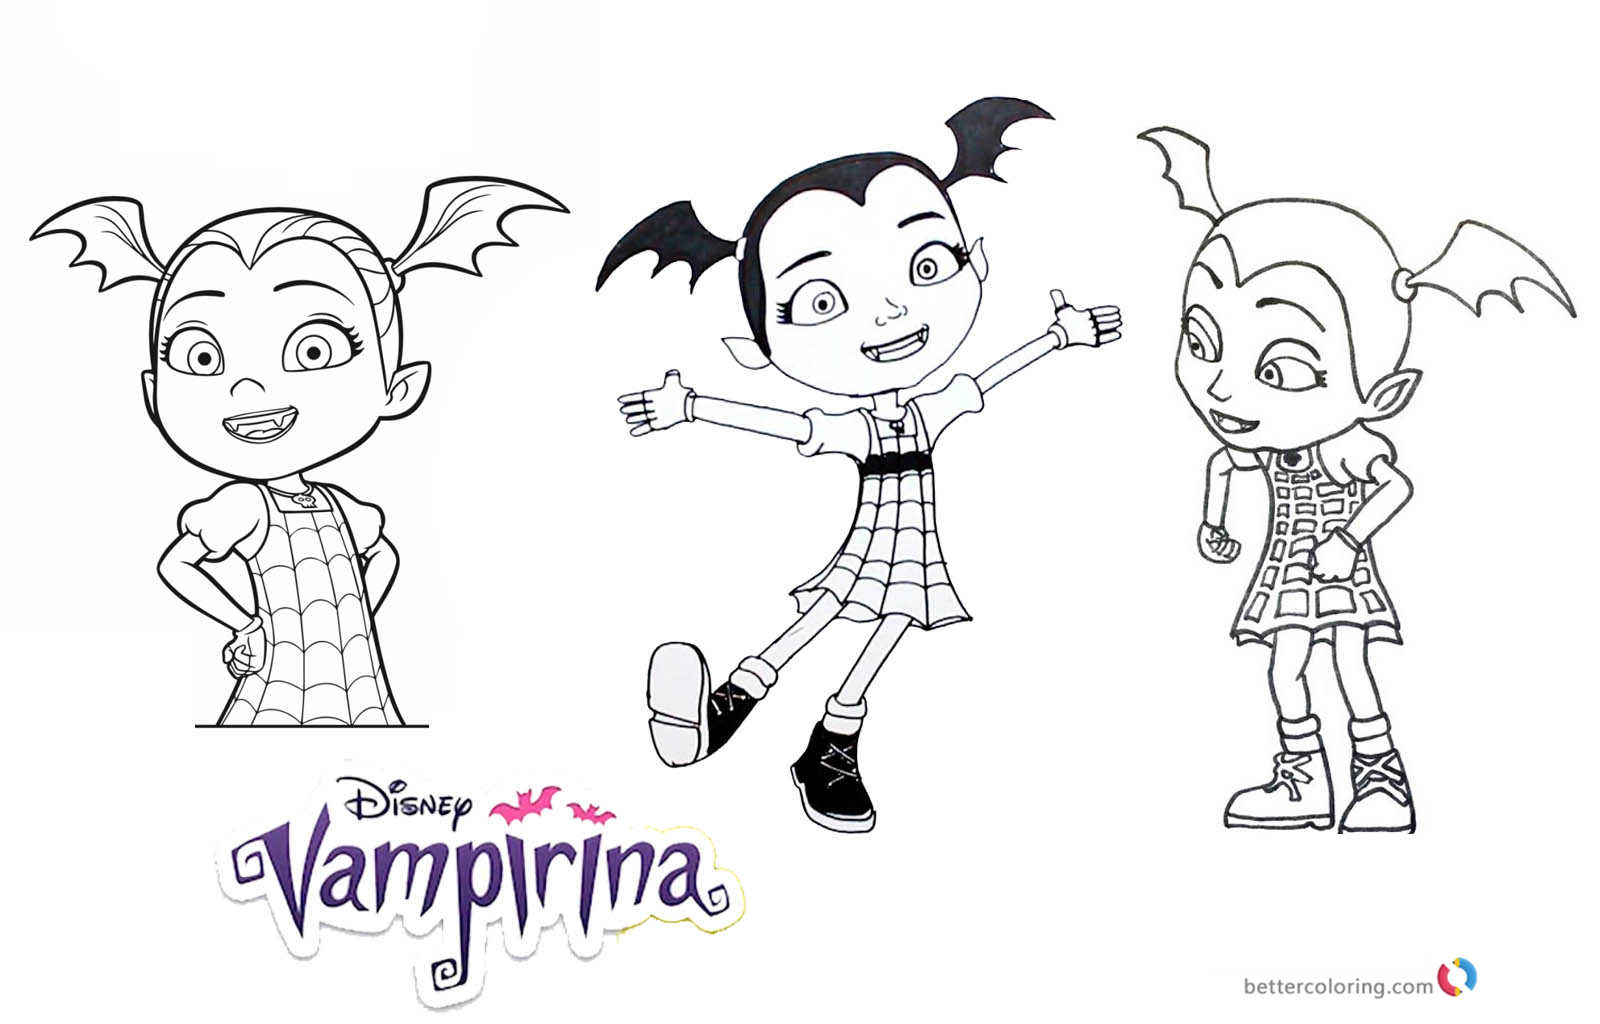 Vampirina Coloring Pages 3 In 1 Free Printable Coloring